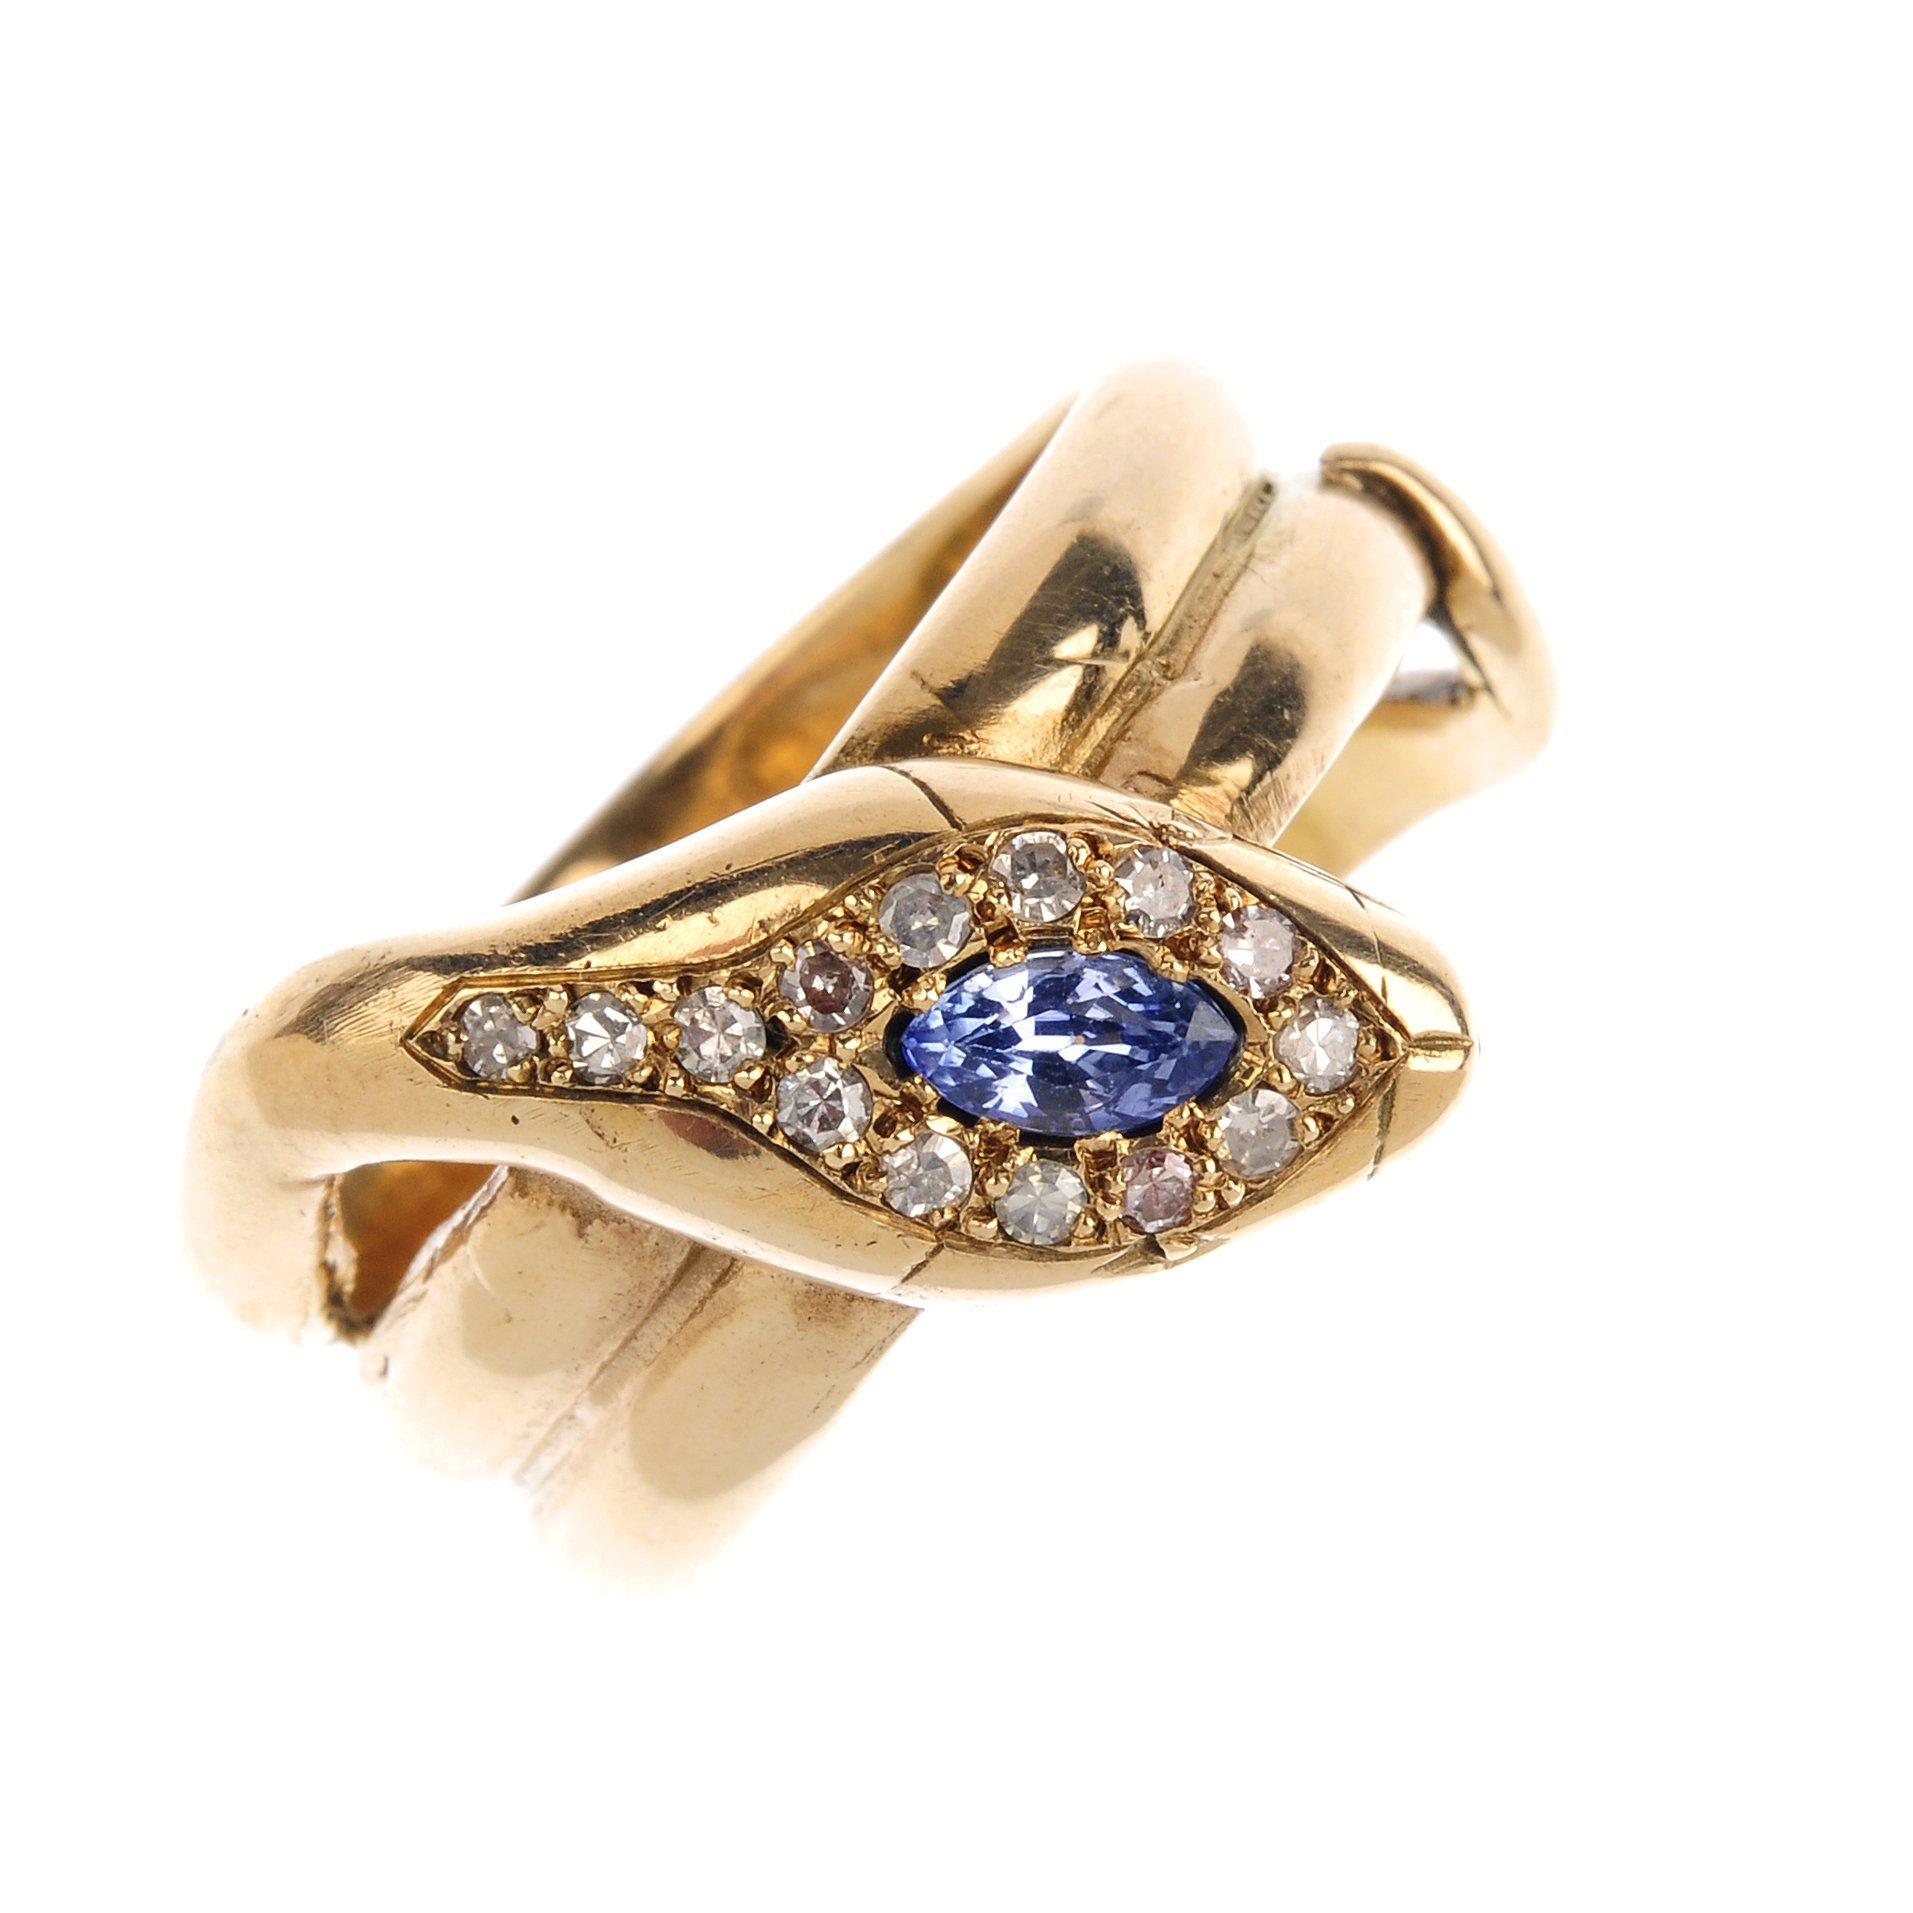 "<a href=""https://www.fellows.co.uk/2104-lot-459-An-early-20th-century-sapphire-and-diamond-snake-ring?utm_source=Ageless%20Heirlooms&utm_medium=blog&utm_campaign=Ageless%20Heirlooms%20Vintage&utm_content=Blog%20and%20social"">LOT 459</a>"